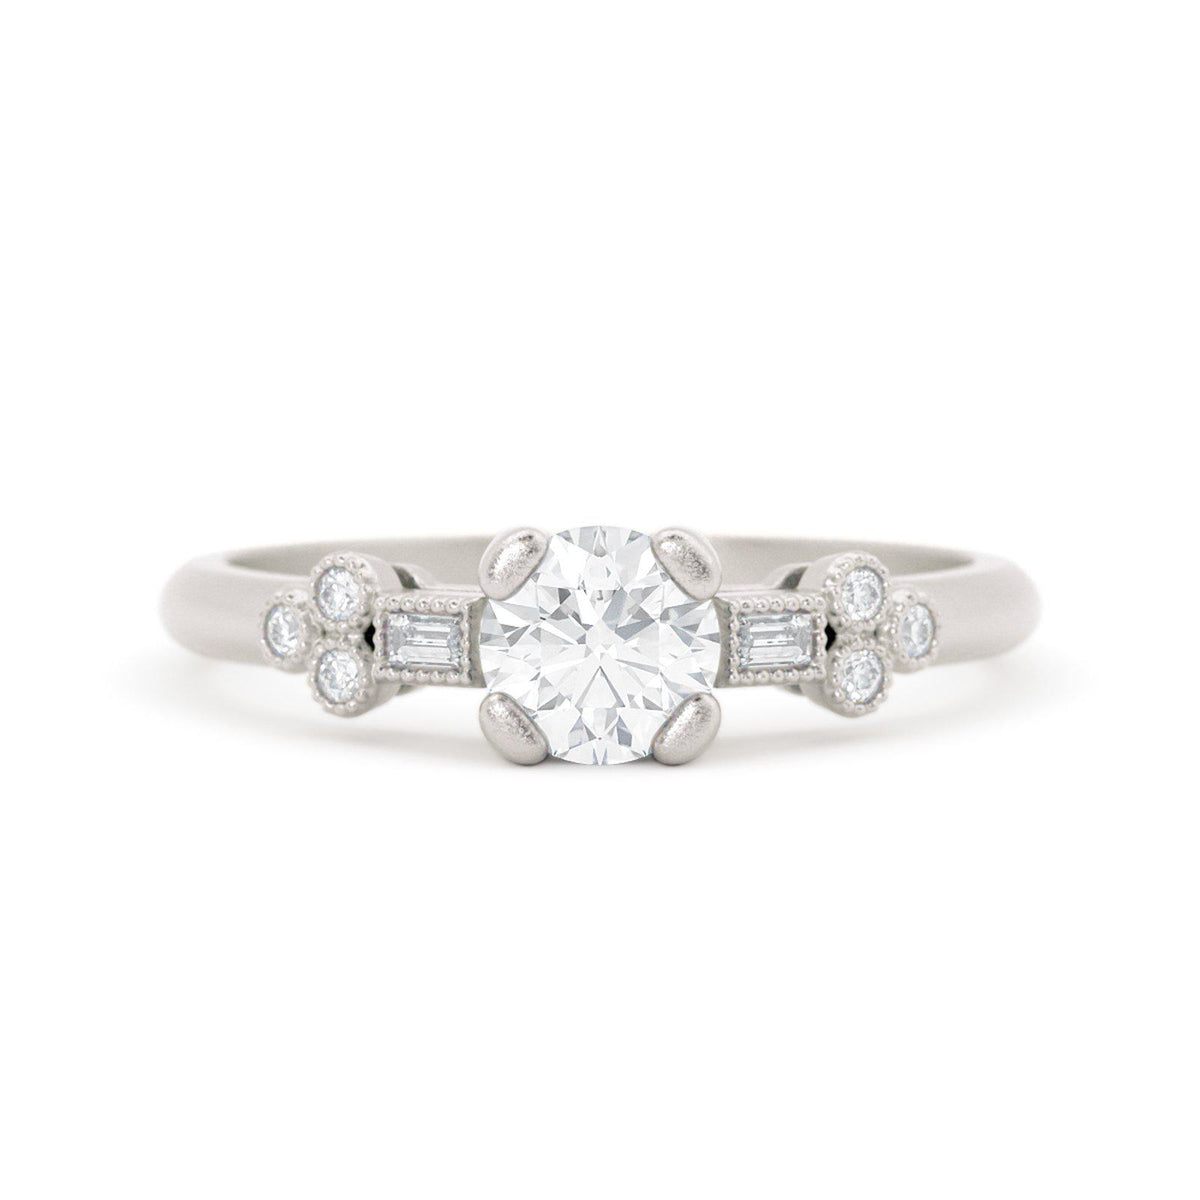 Norah Mae Dainty Diamond Ring White Gold